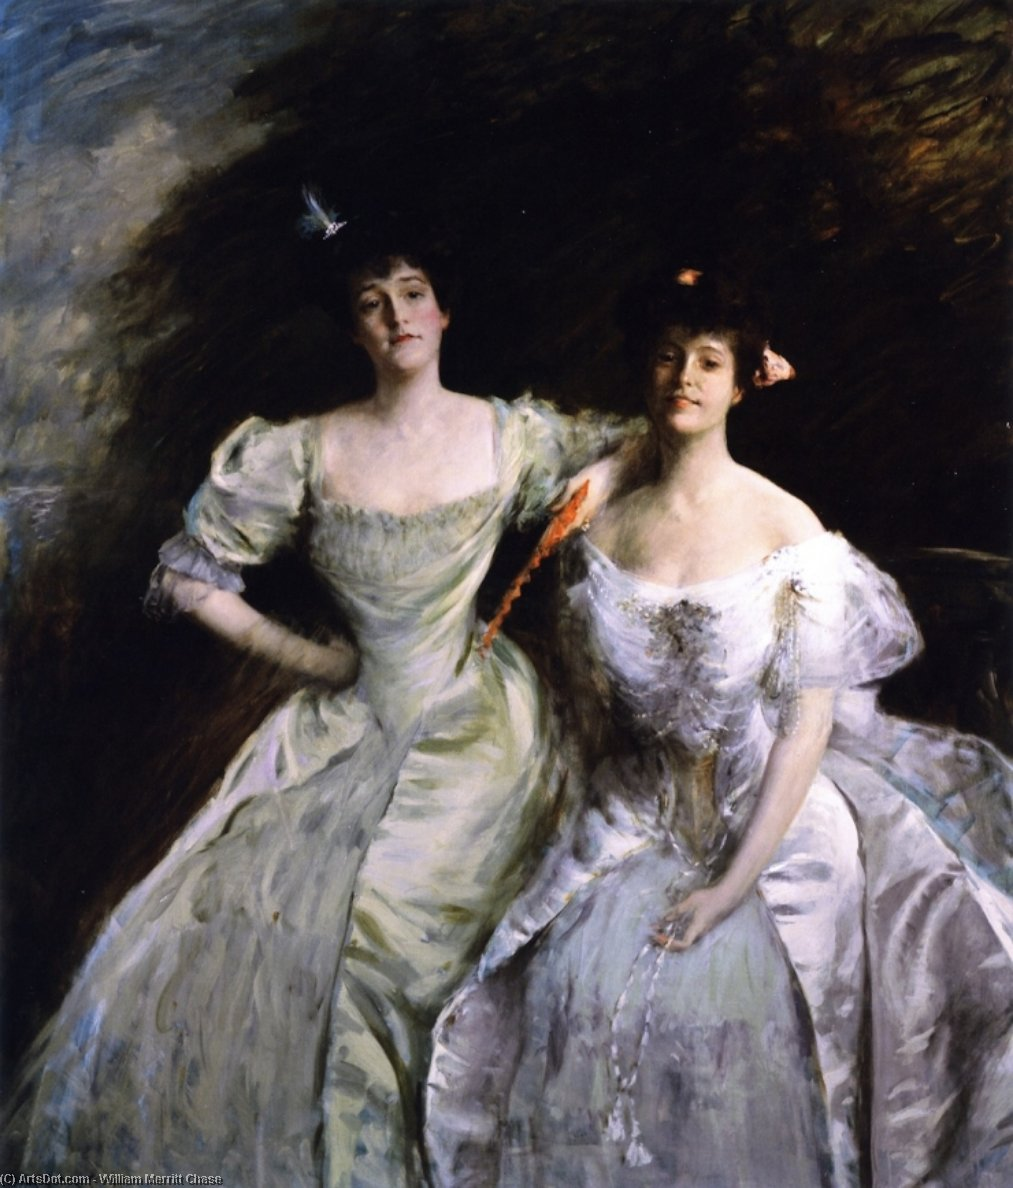 The Sisters (also known as The Sisters - Mrs. Sullivan and Mrs. Oskar LIvingston, The Sisters - Mrs. Oskar Livingston and Mrs. James Francis Sullivan), Oil On Canvas by William Merritt Chase (1849-1916, United States)